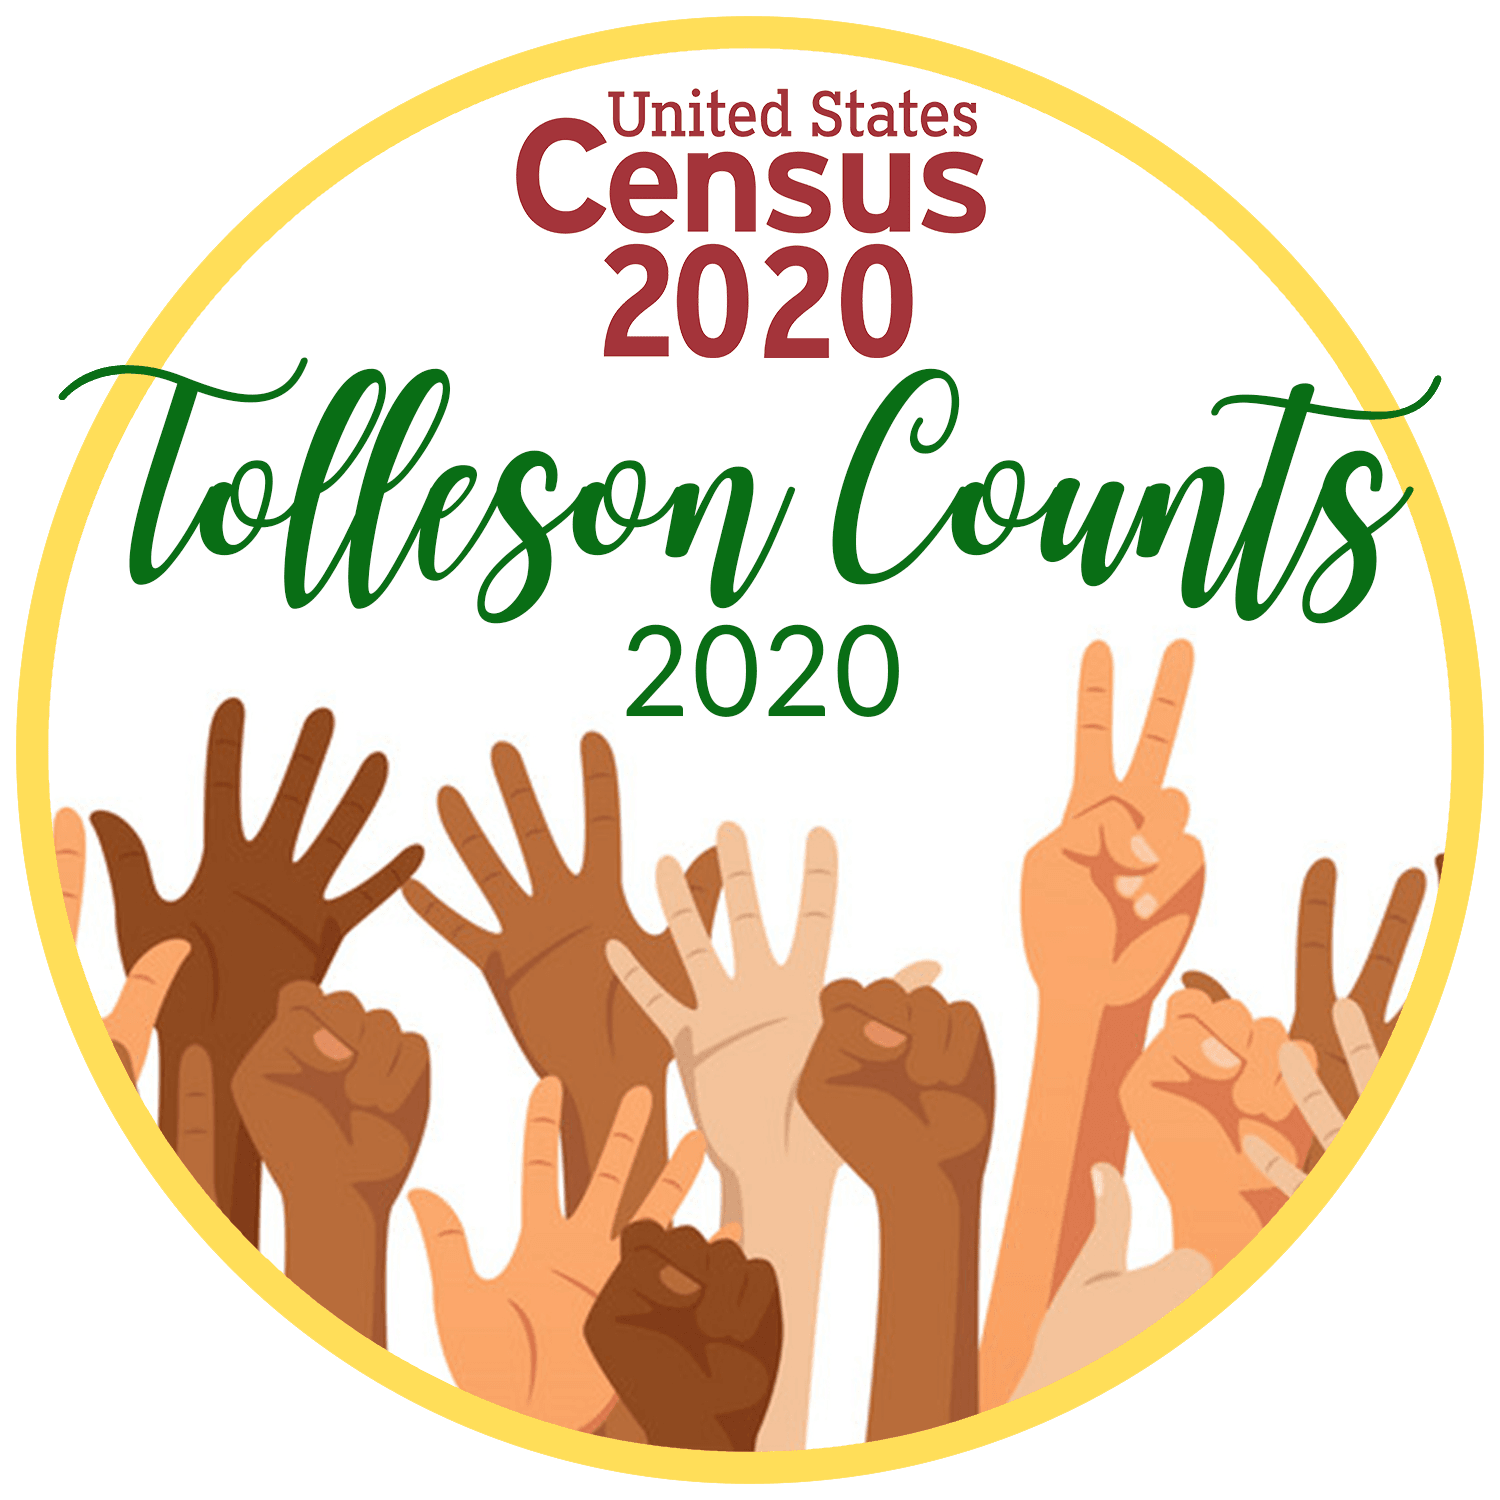 Tolleson Counts 2020 logo